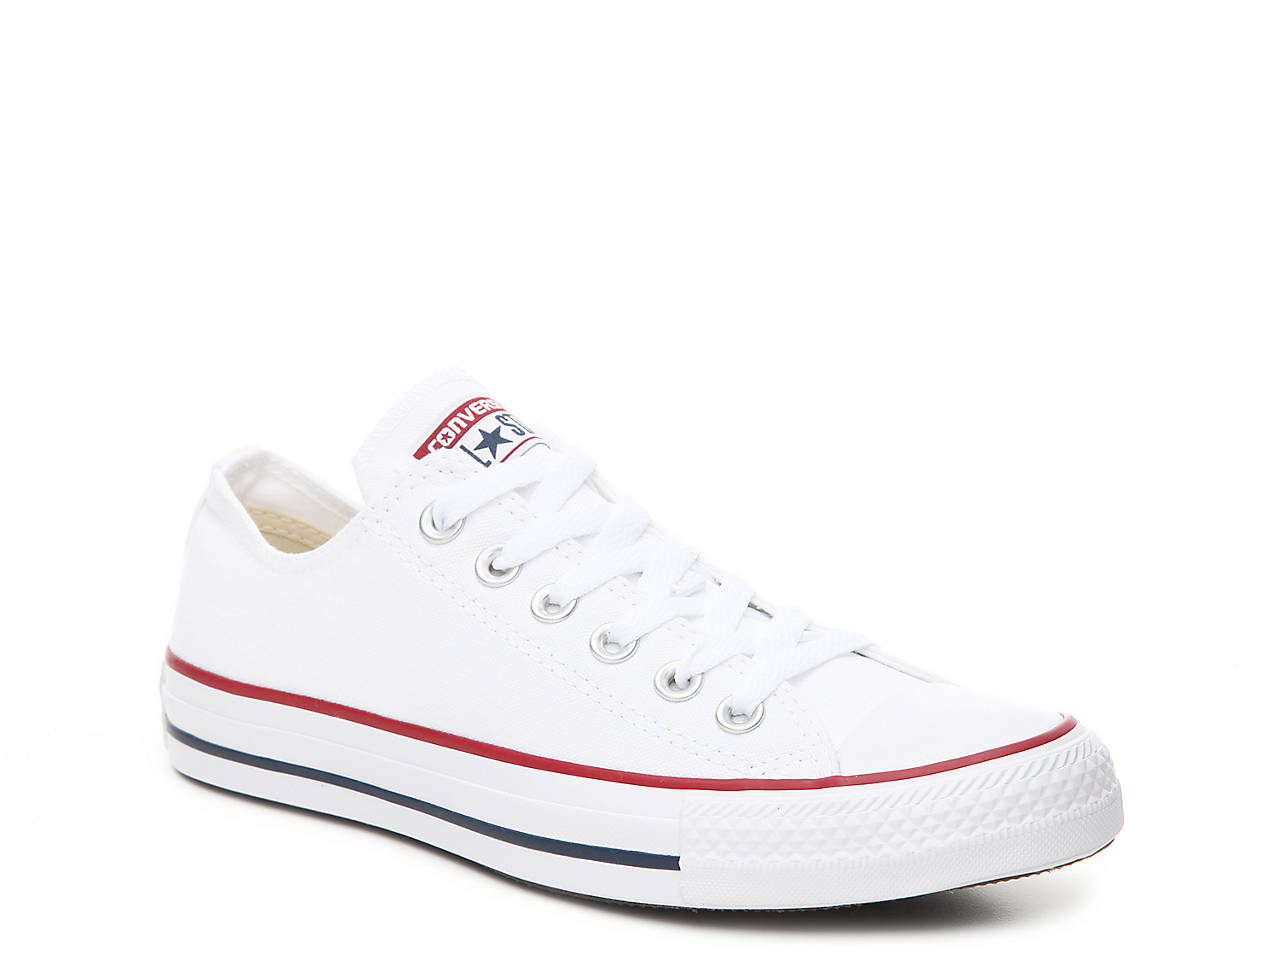 ccde2bd6ccf7 Converse All-Star High Tops   Sneakers